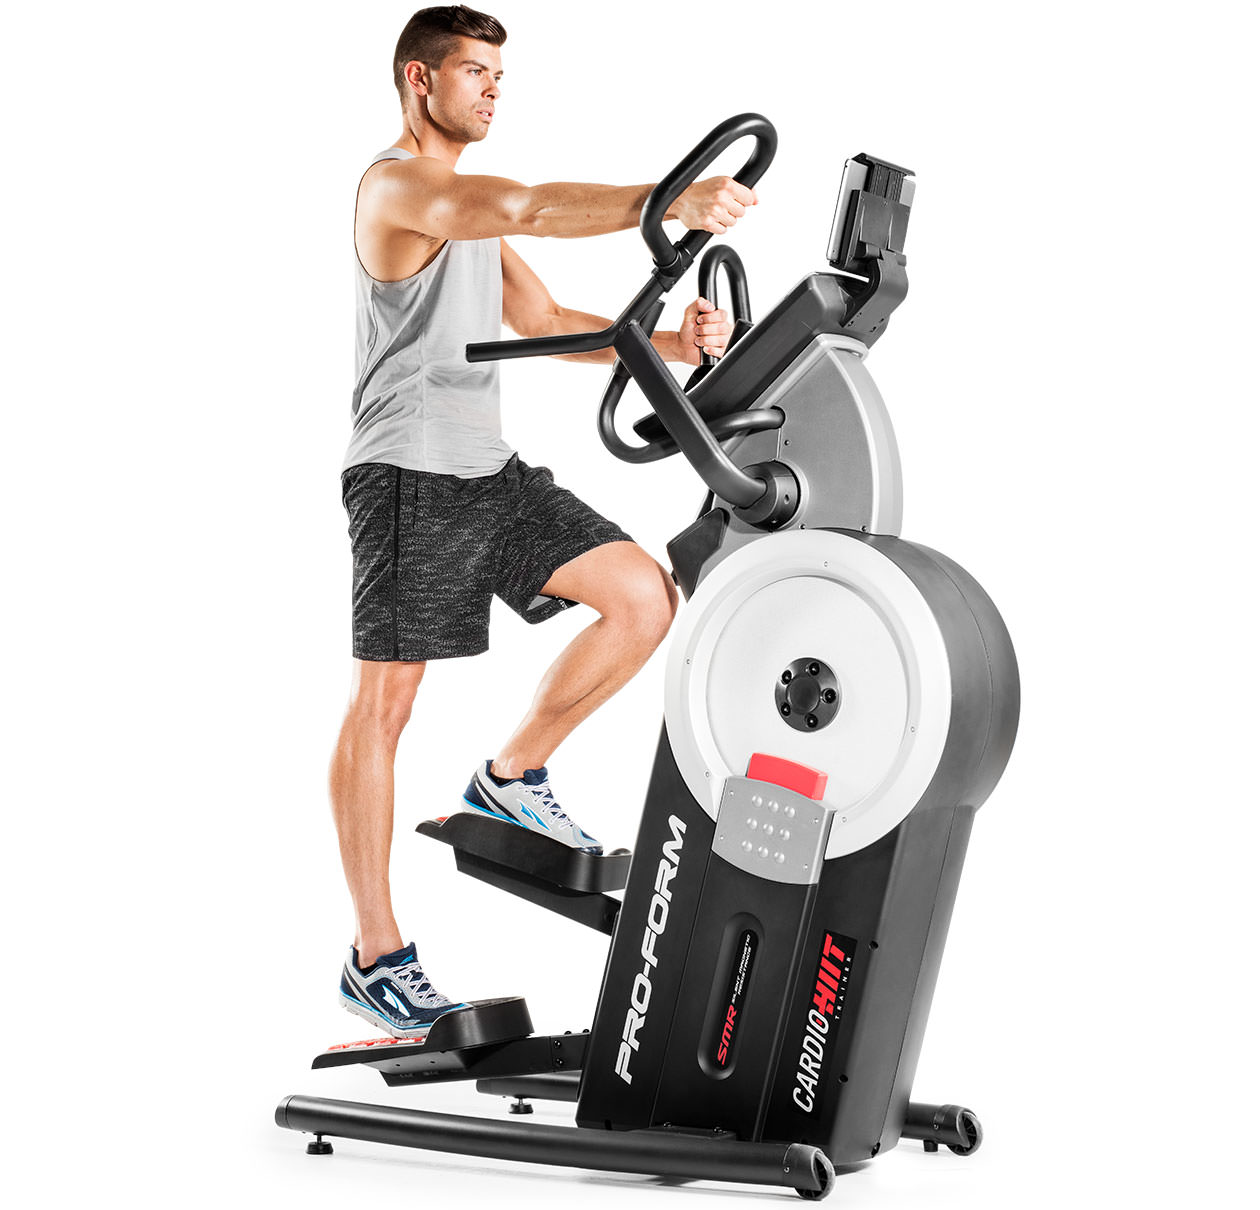 Proform HIIT Trainer gallery image 3